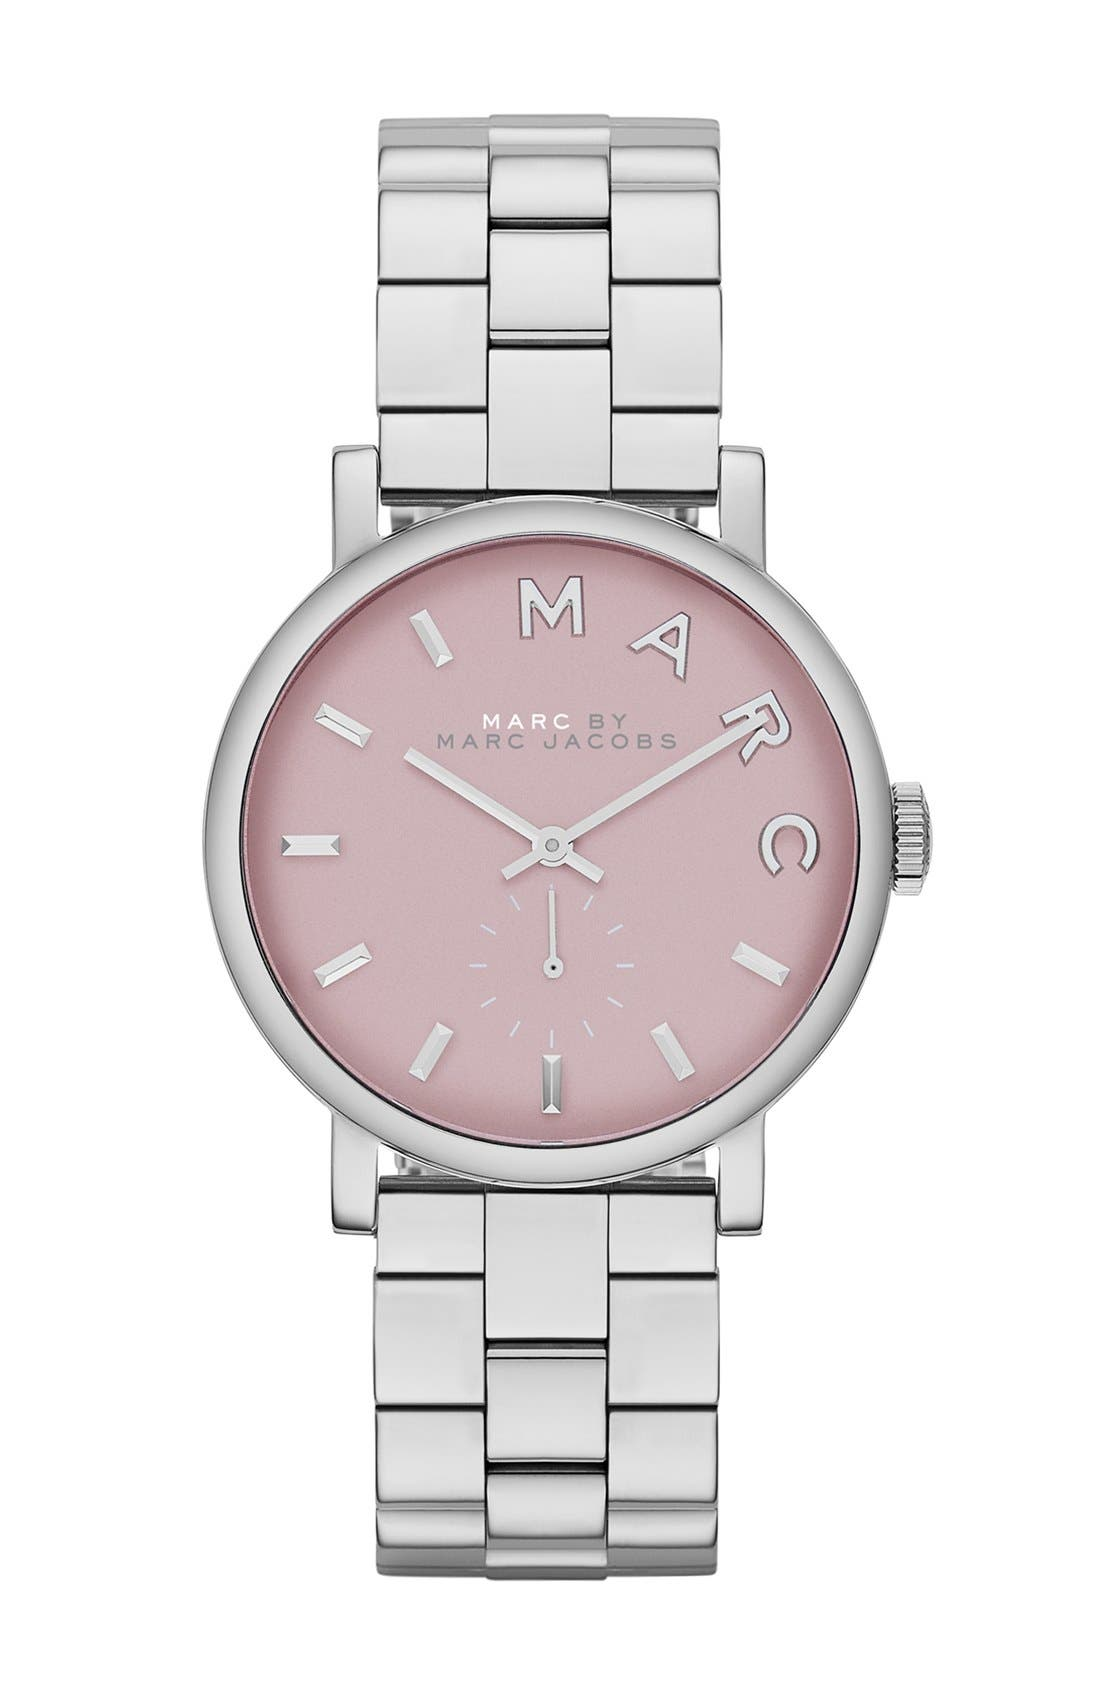 Main Image - MARC JACOBS 'Small Baker' Bracelet Watch, 28mm